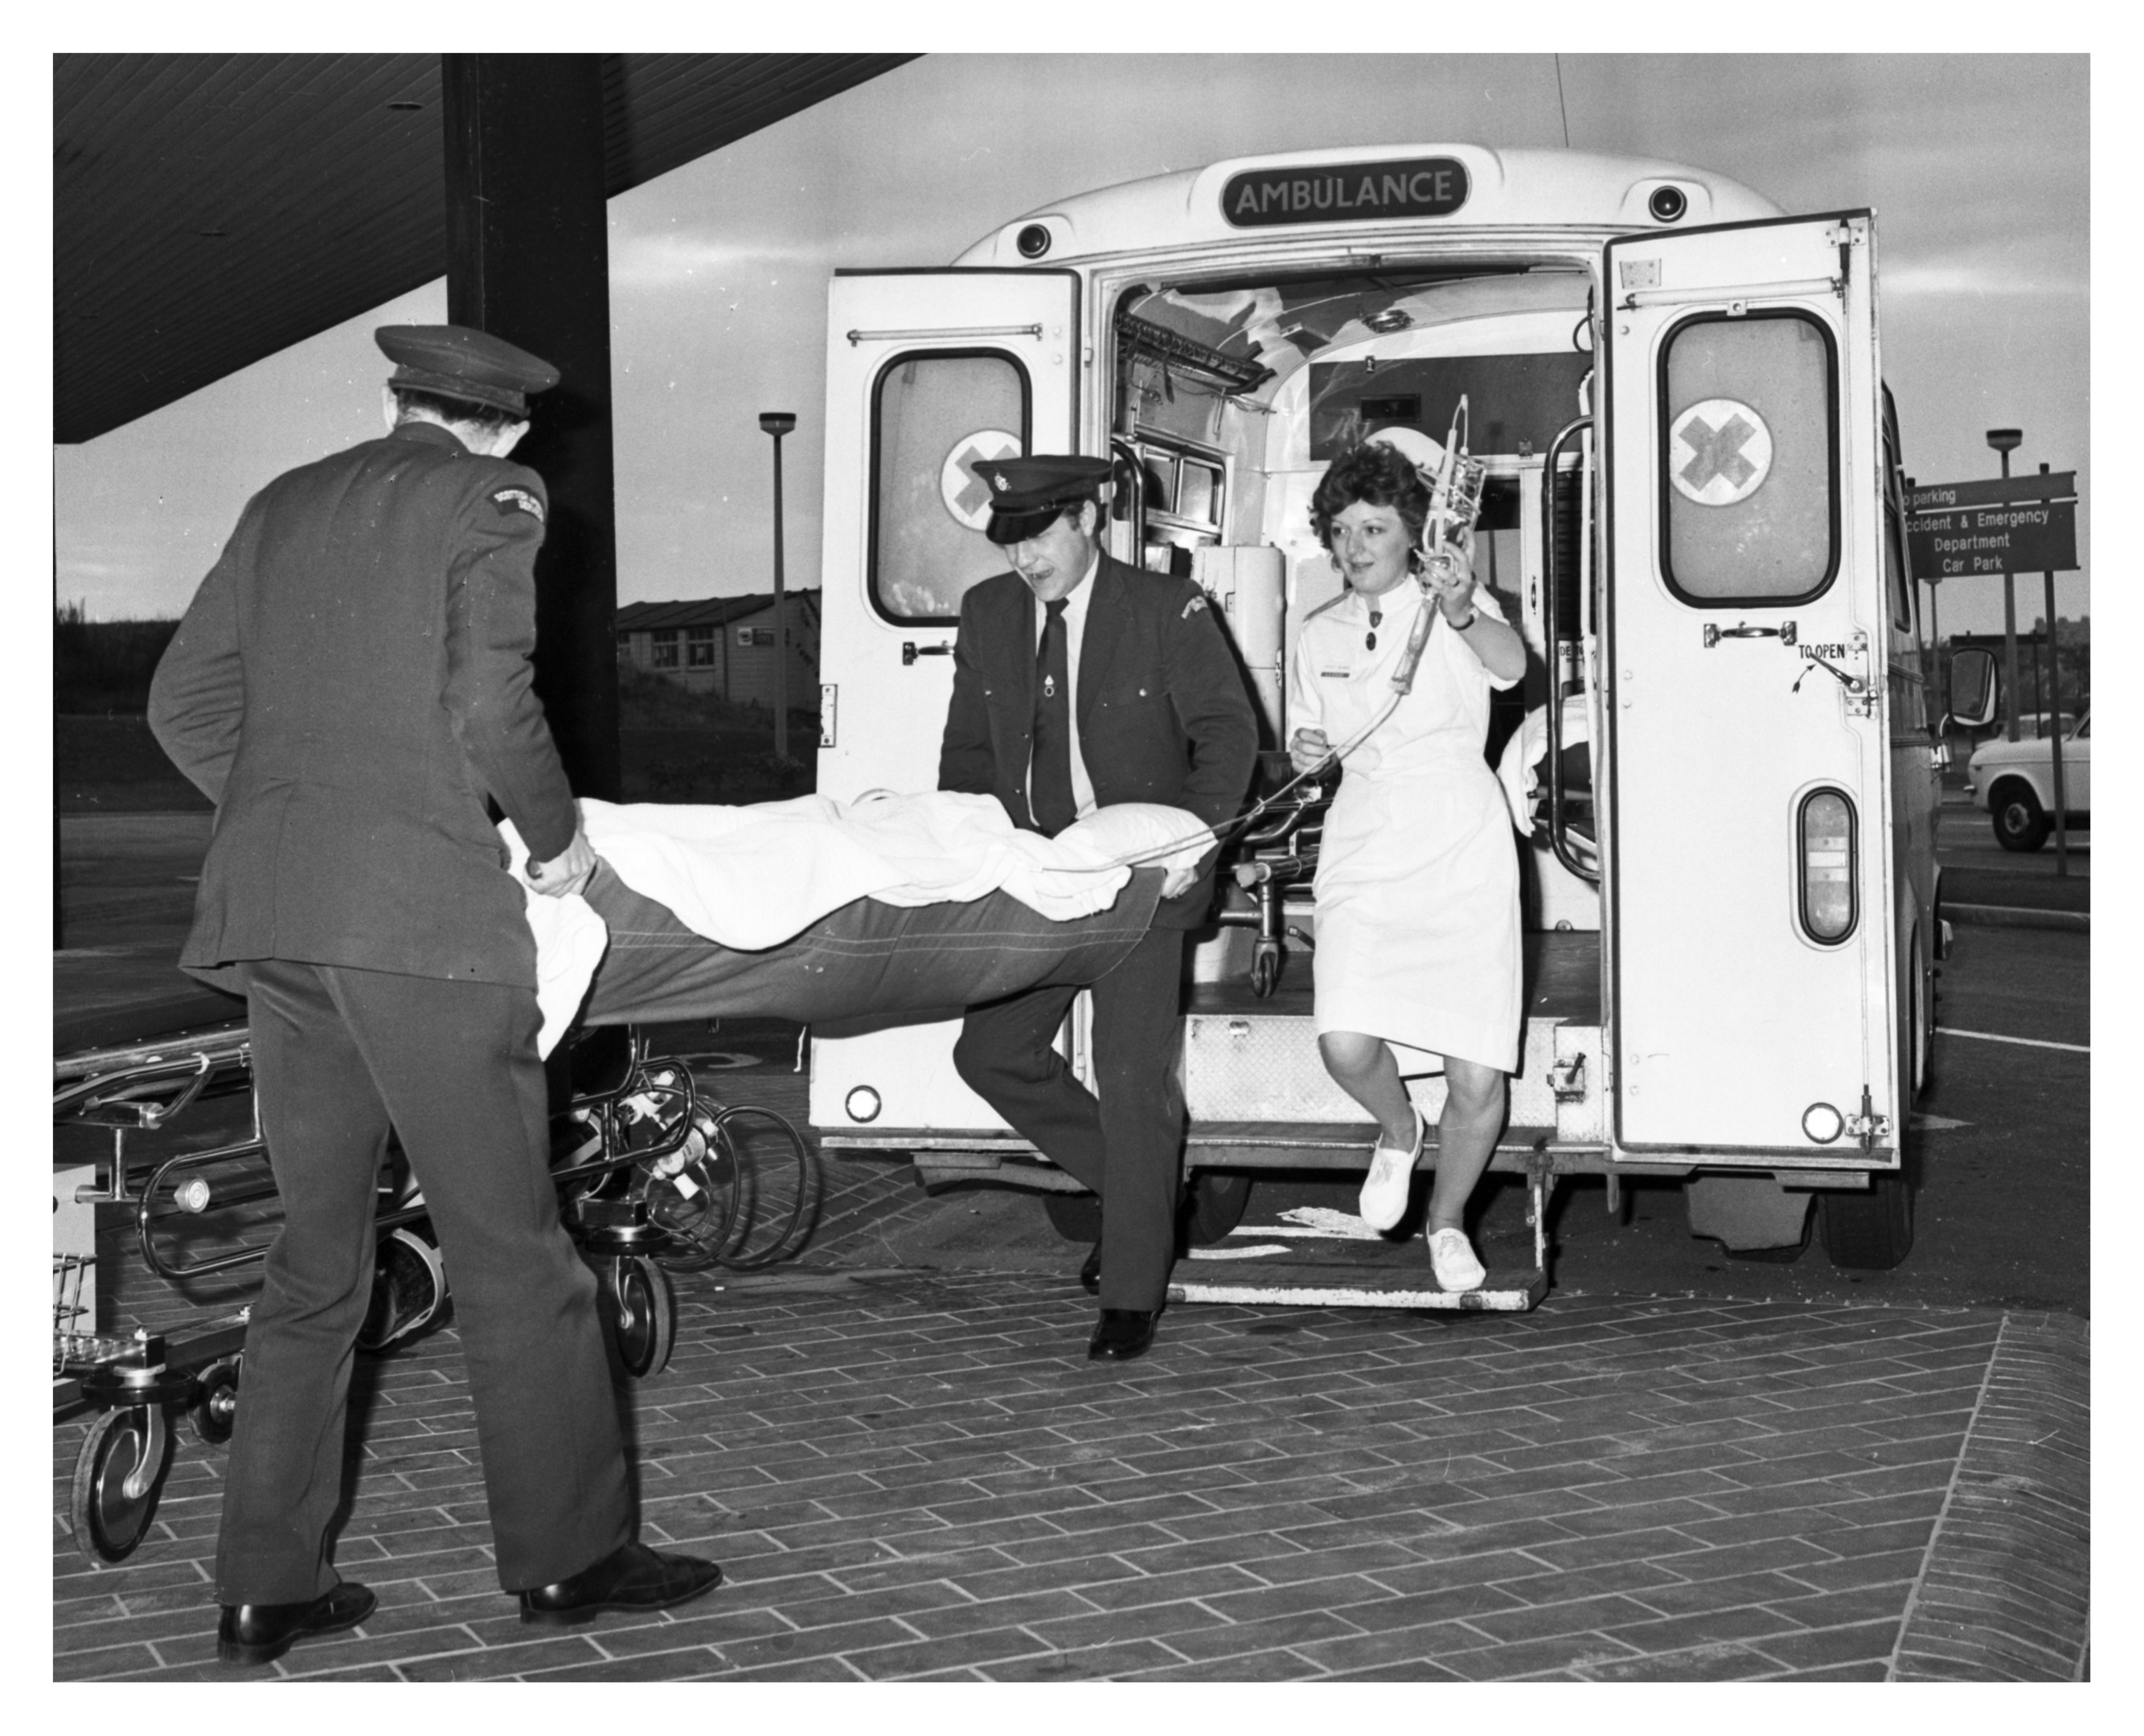 The last patient to be transferred from Woolmanhill arrives at Foresterhill casualty unit.